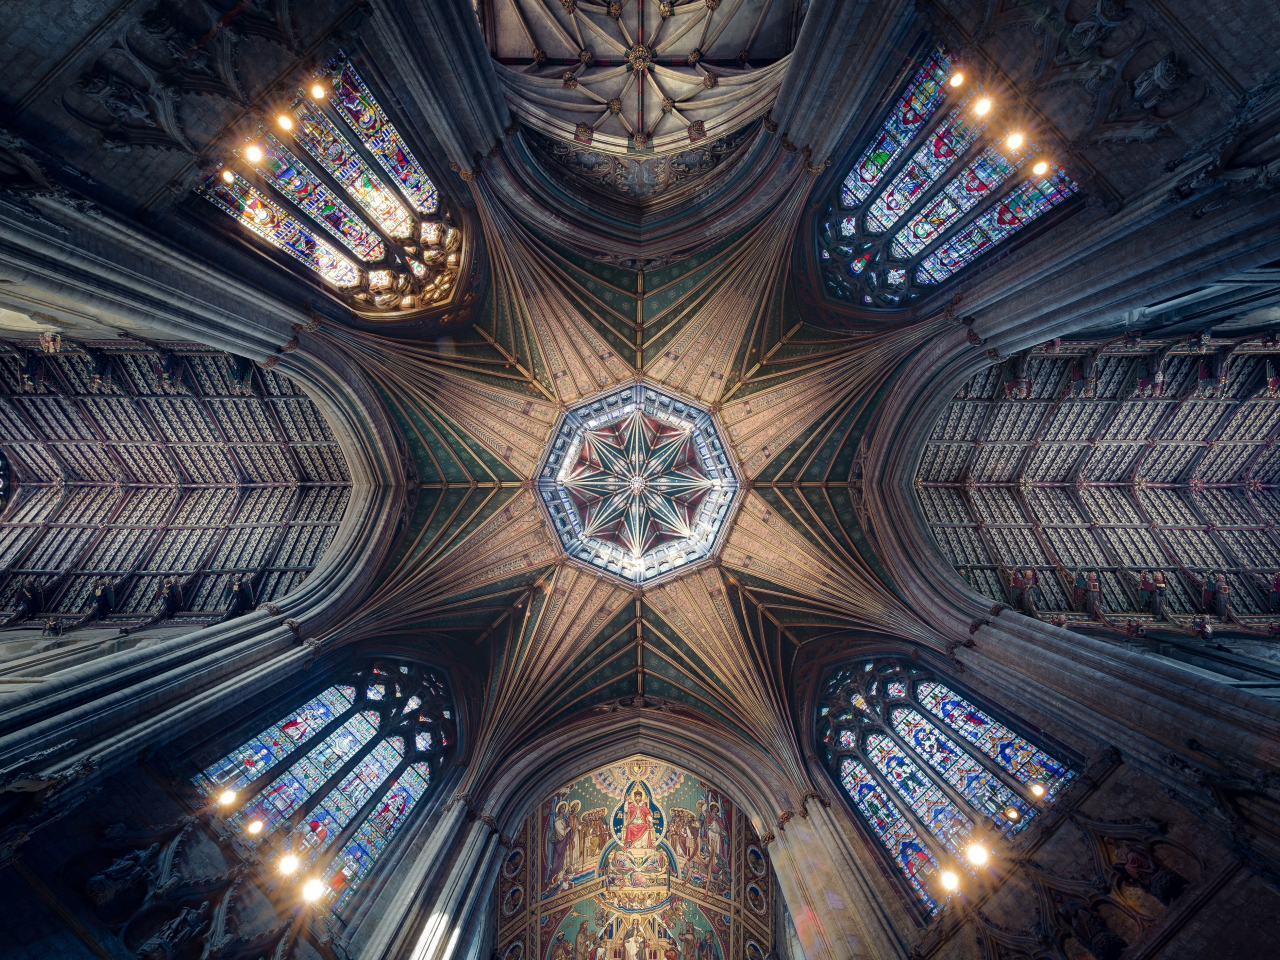 Ceiling, cathedral, symmetrical interior, architecture, 1280x960 wallpaper